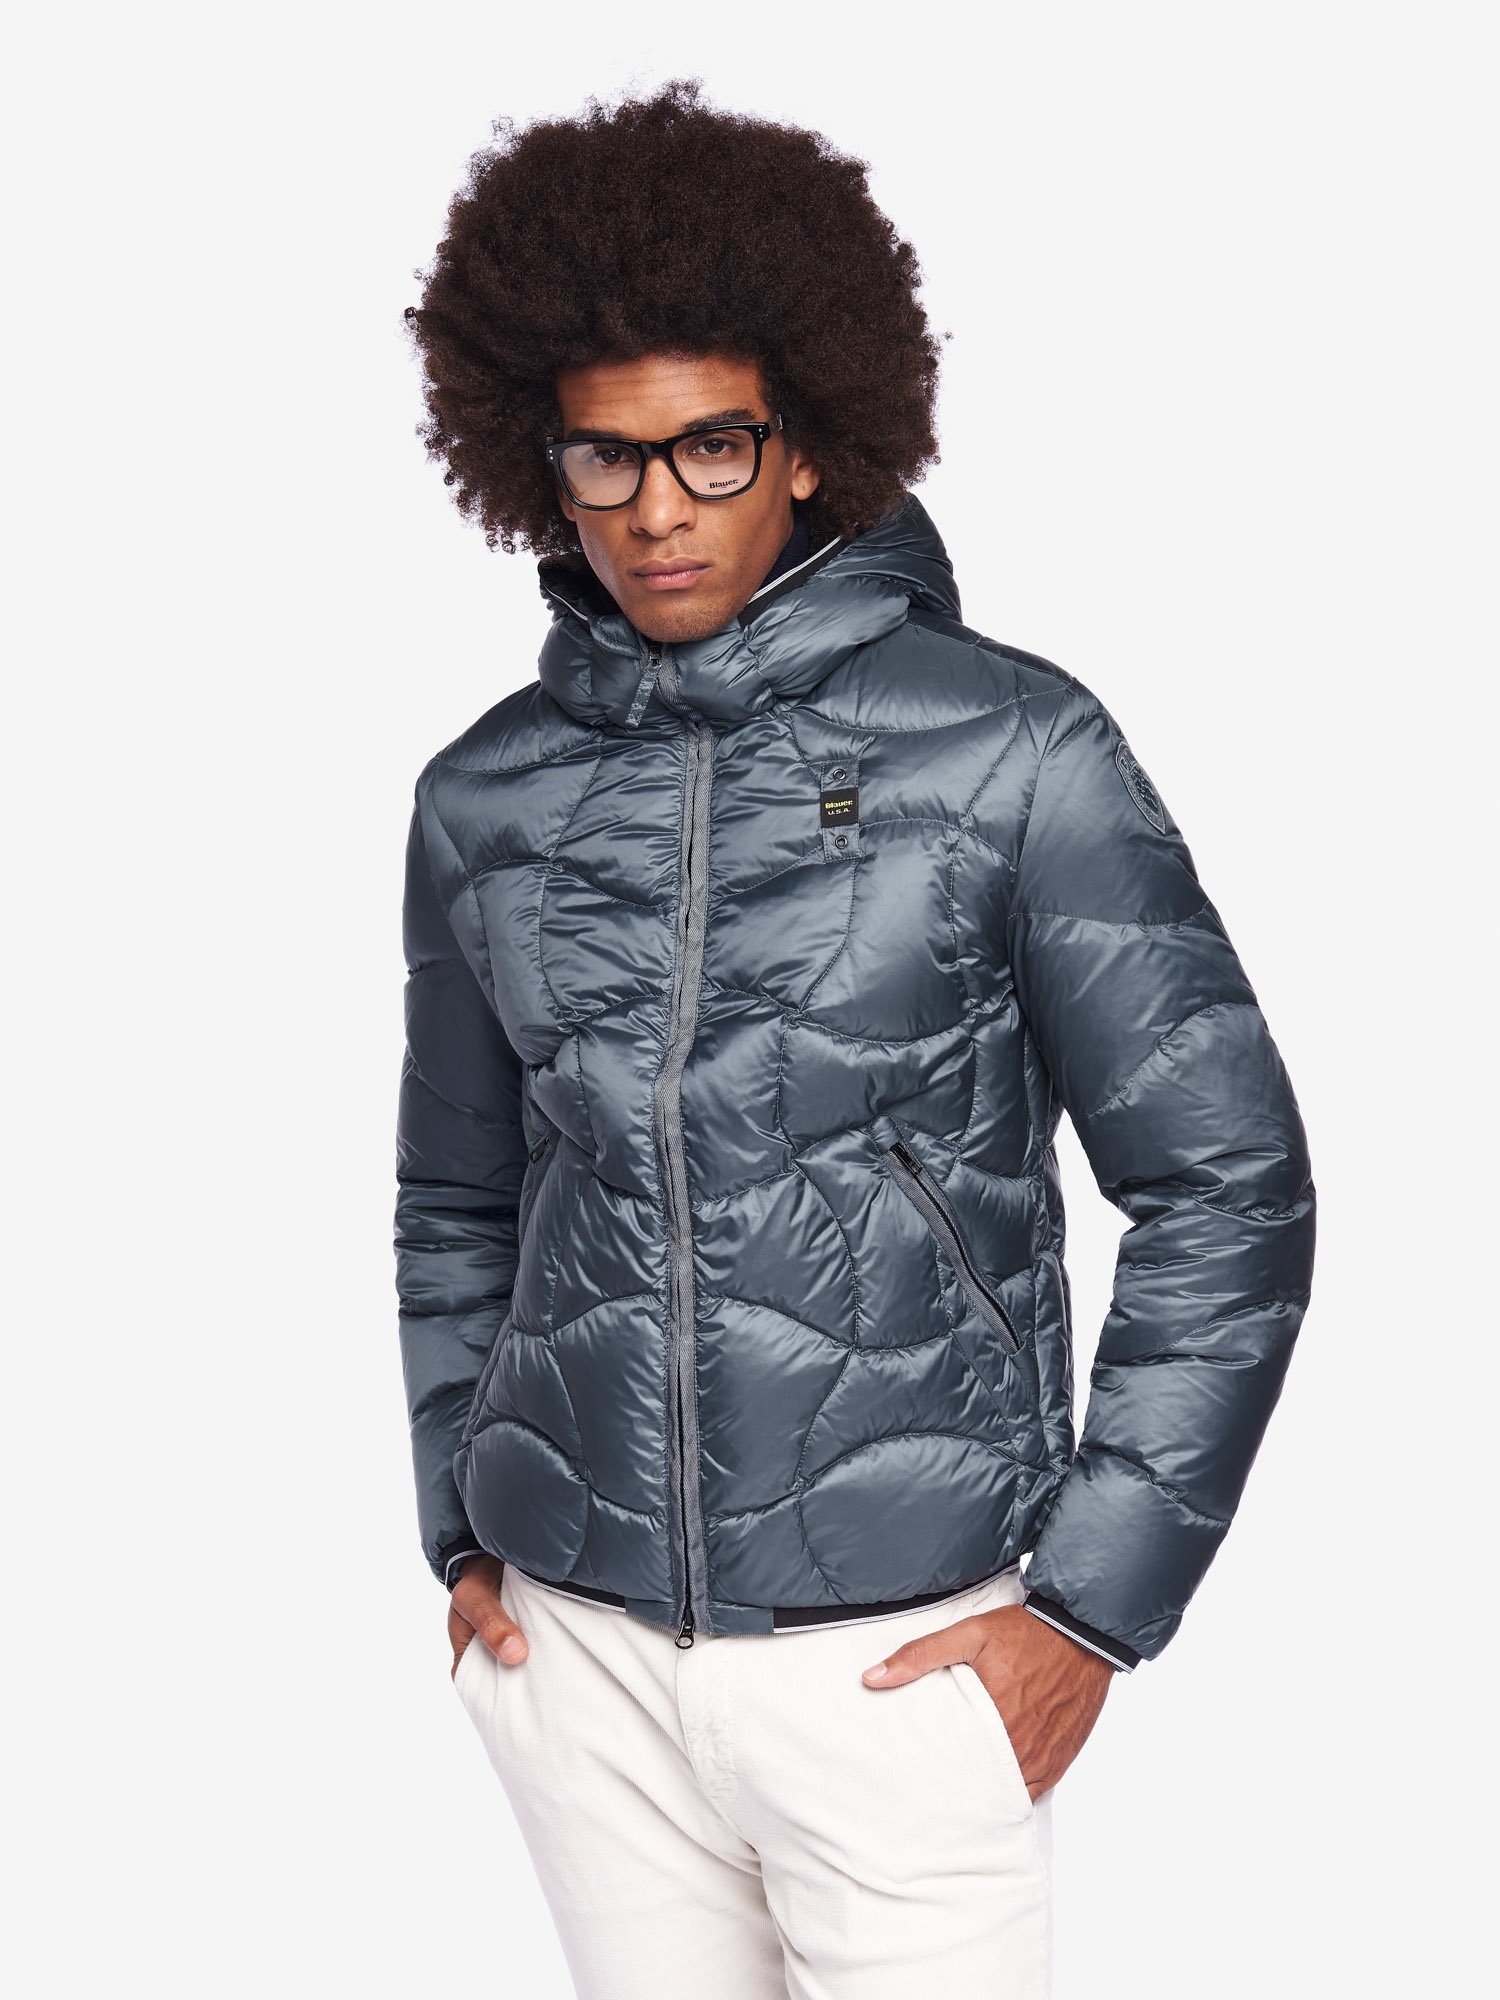 Blauer - PEARSON DOWN JACKET WITH HOOD - GreyGreen - Blauer